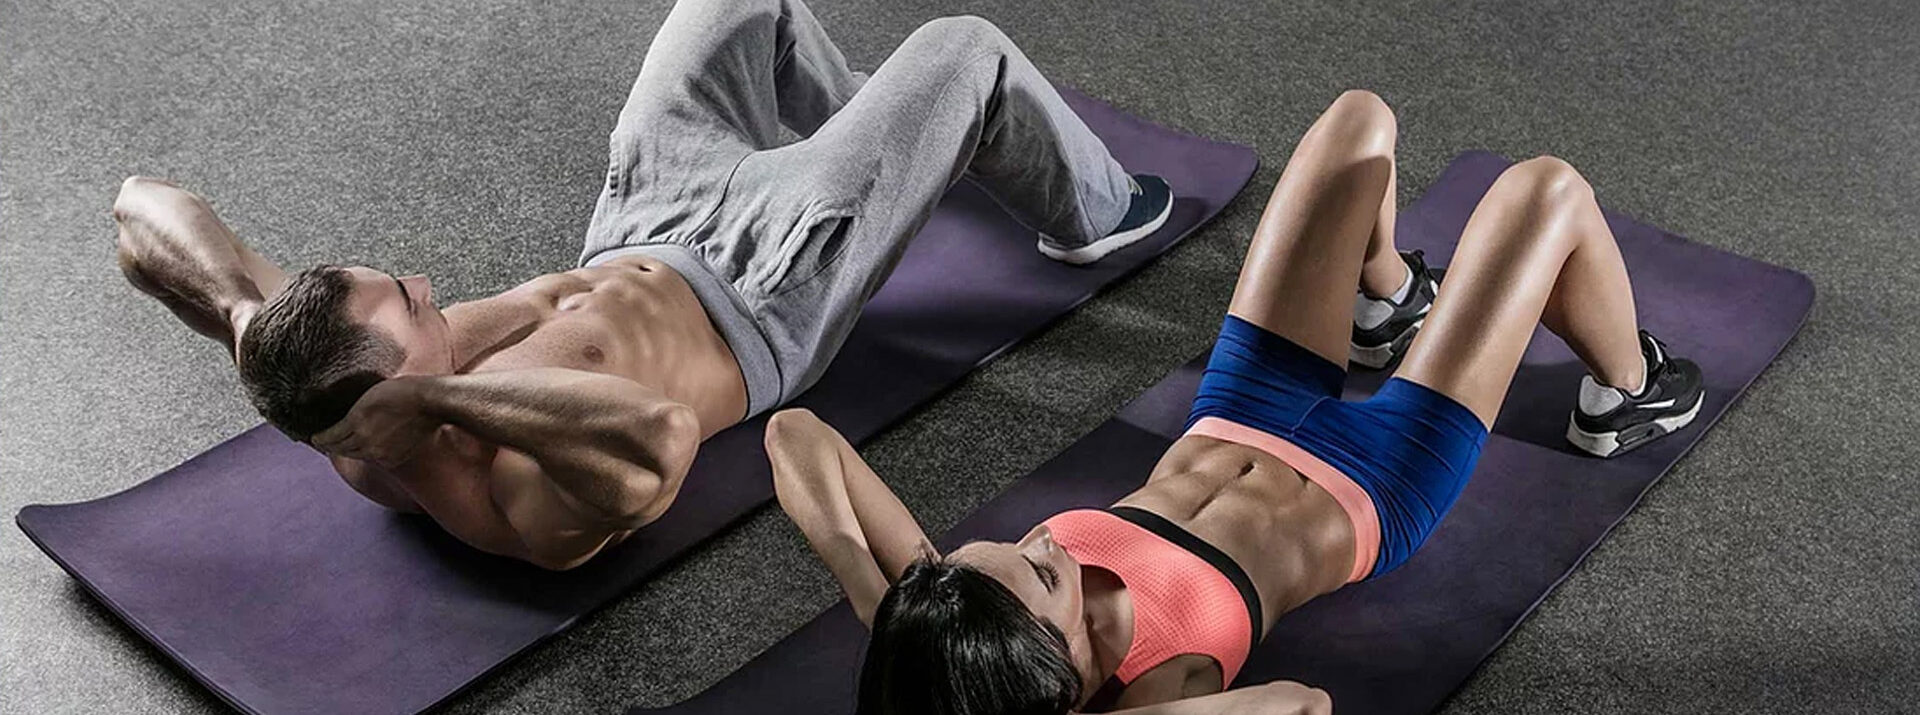 Get Back to Health and maintain your fitness